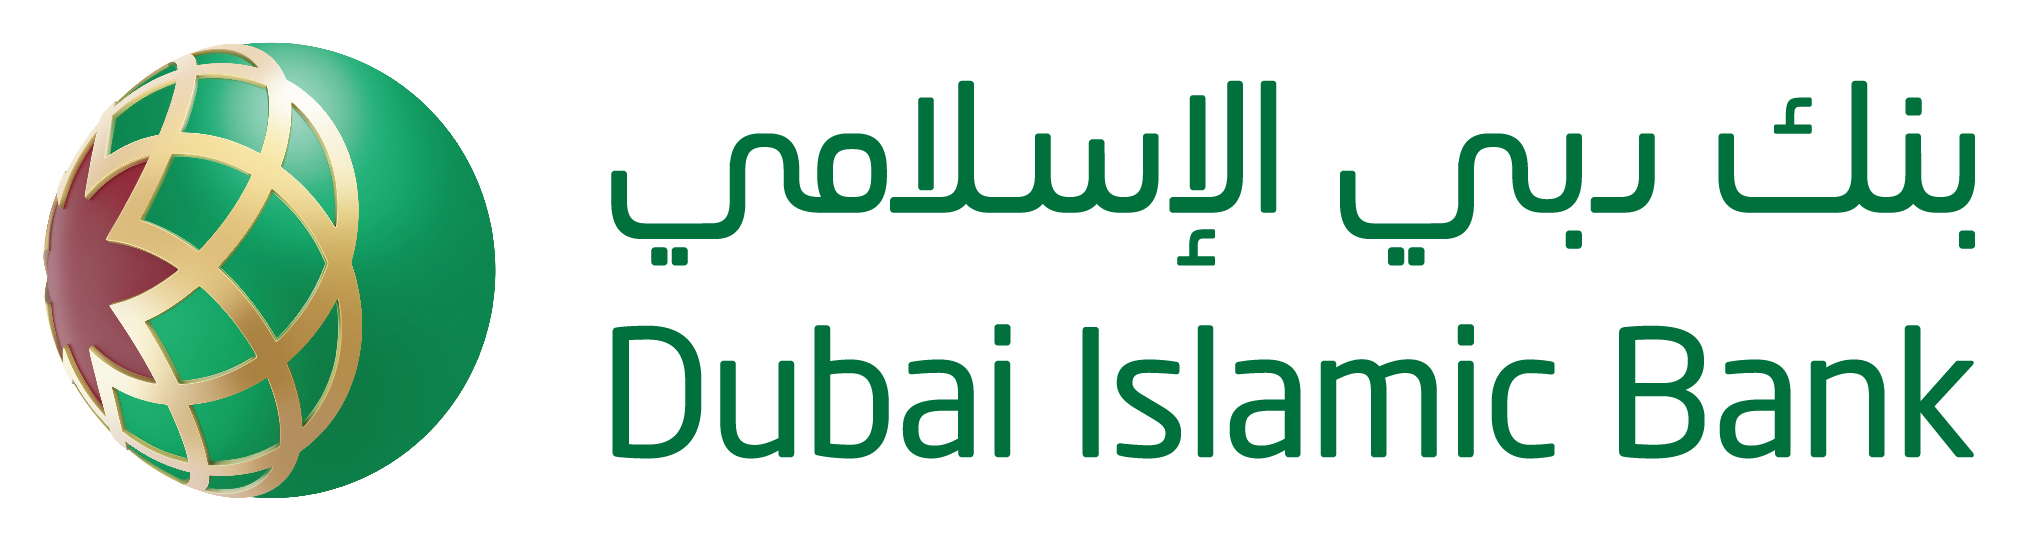 Dubai Islamic Bank - Personal Finance